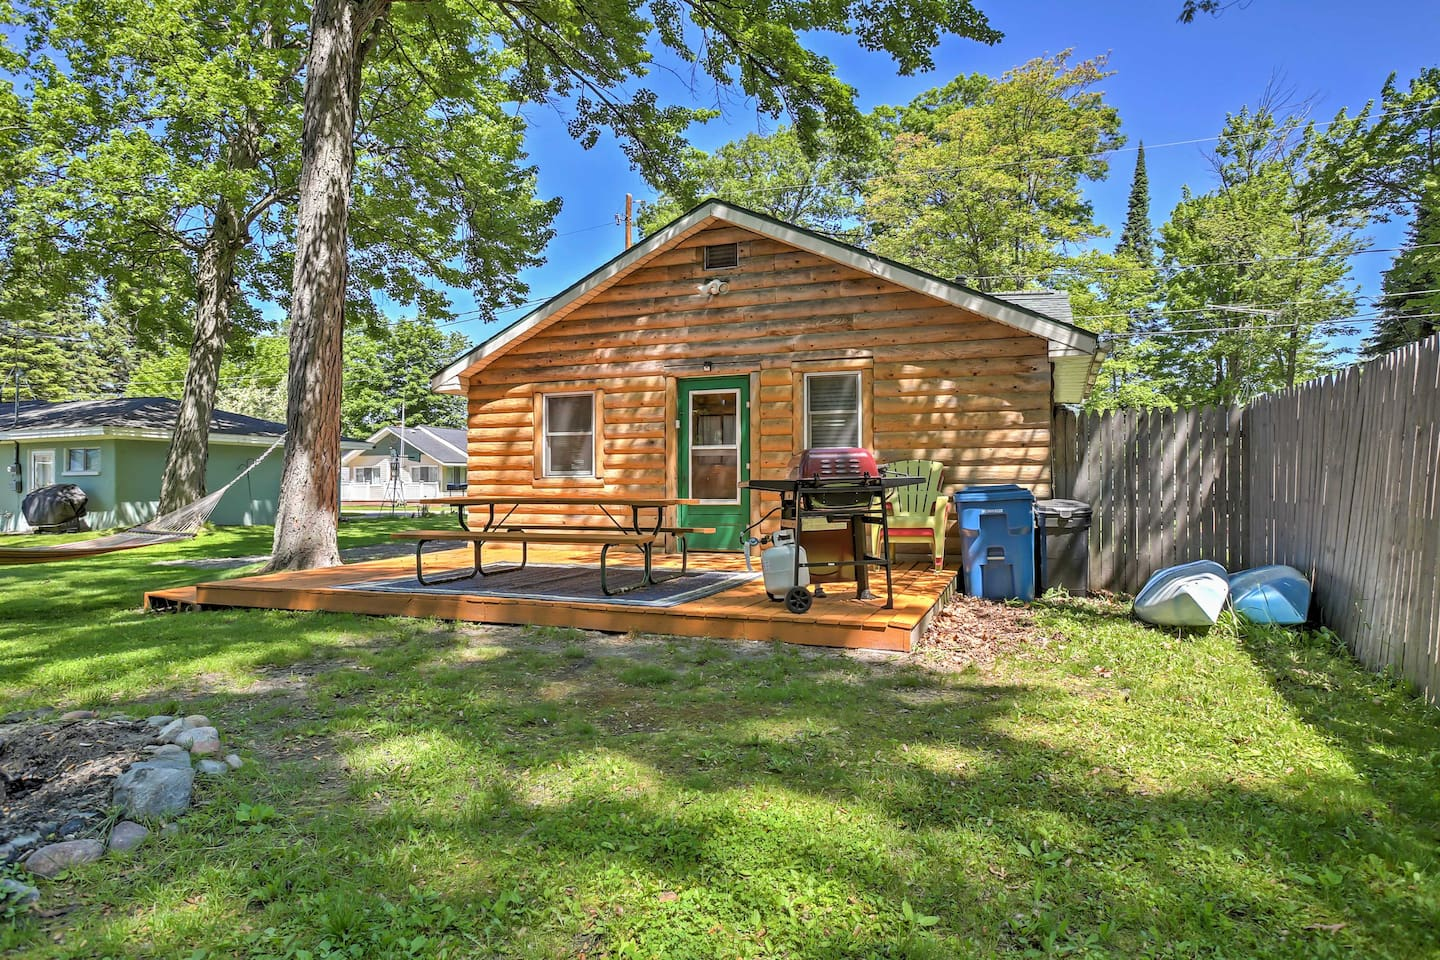 rent mi cottages vacation houghton northeast lake reviews vrbo booking cottage rentals usa for michigan